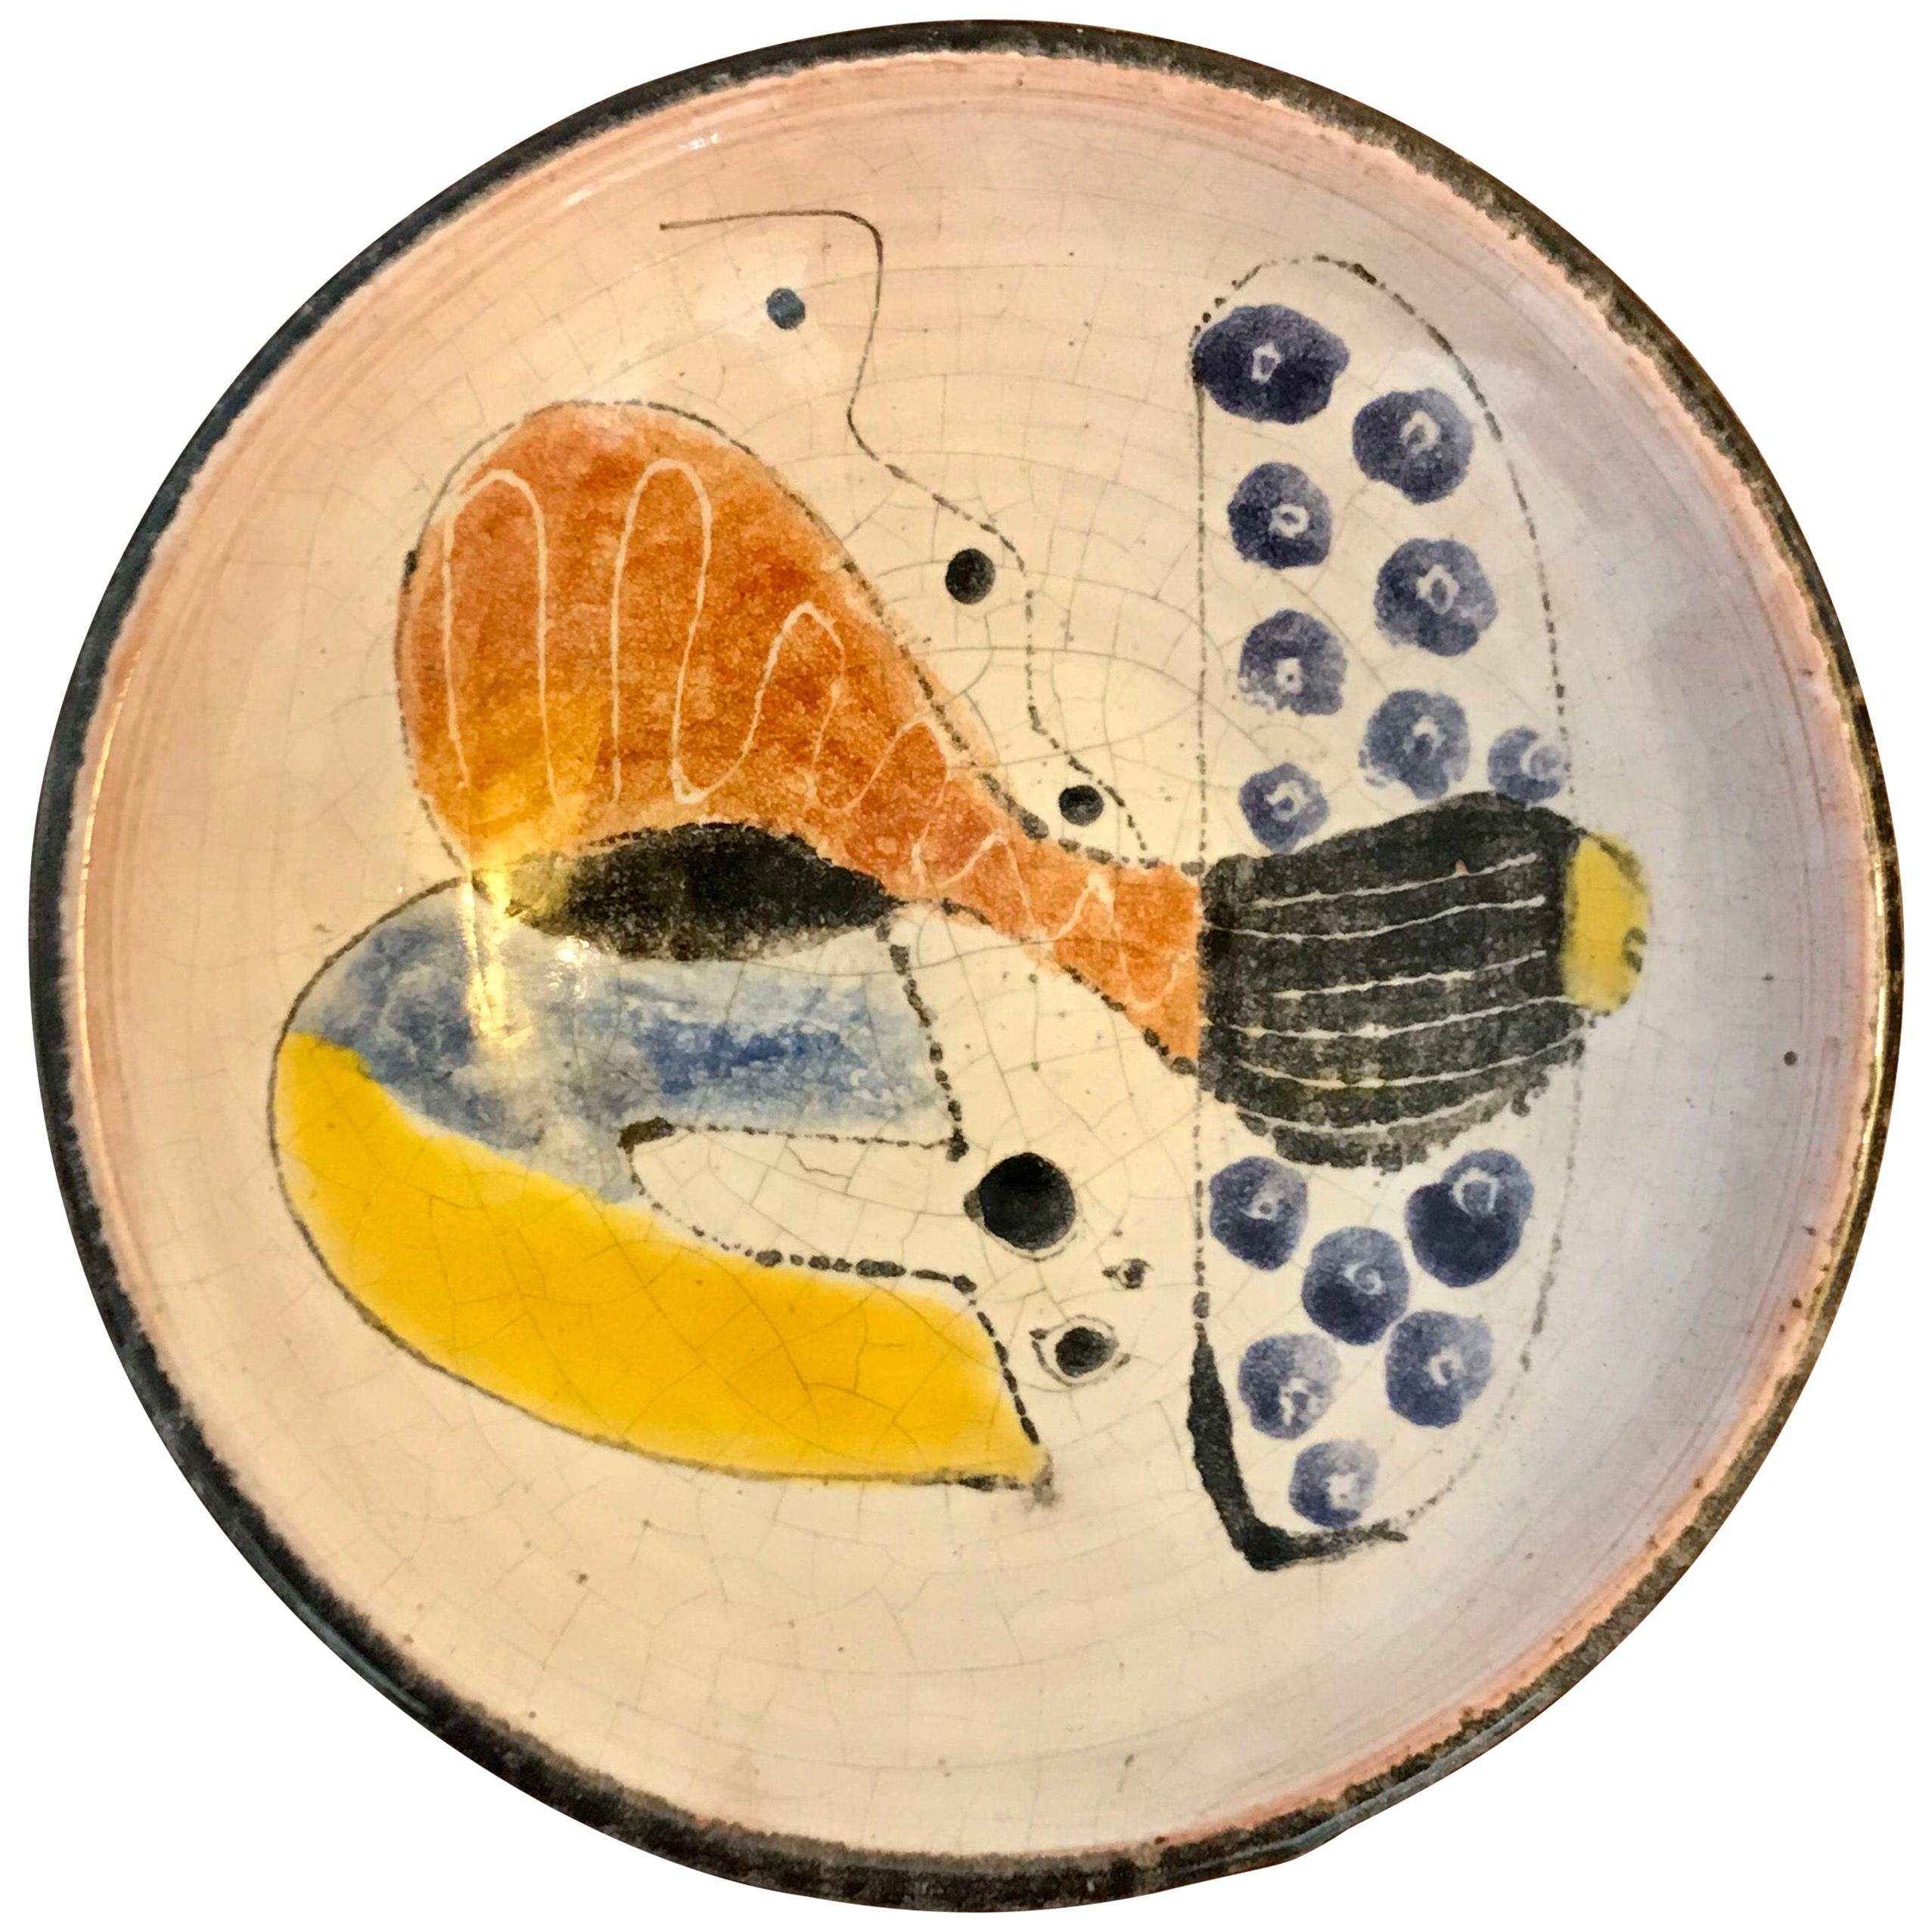 Small Studio Pottery Bowl with Abstract Art, 20th Century